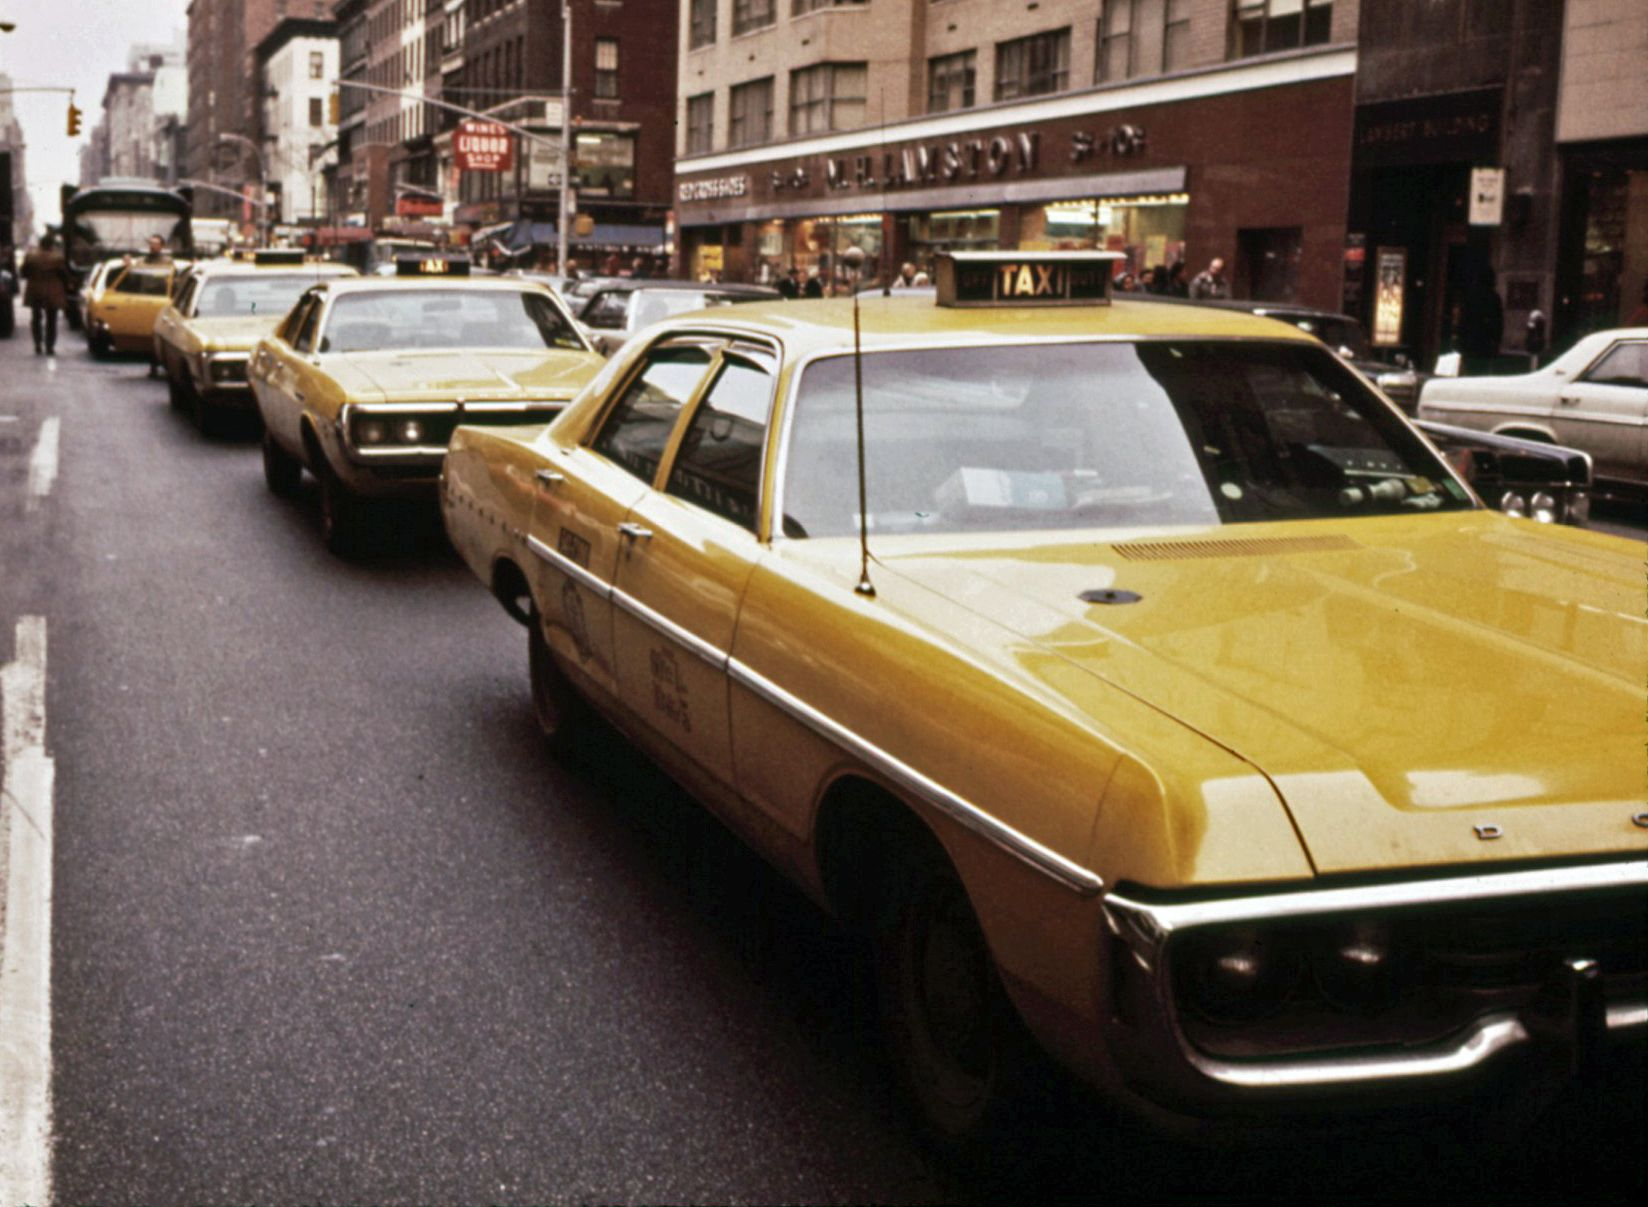 Pin By Aristotle On Cars Taxi Cab Yellow Taxi Cab